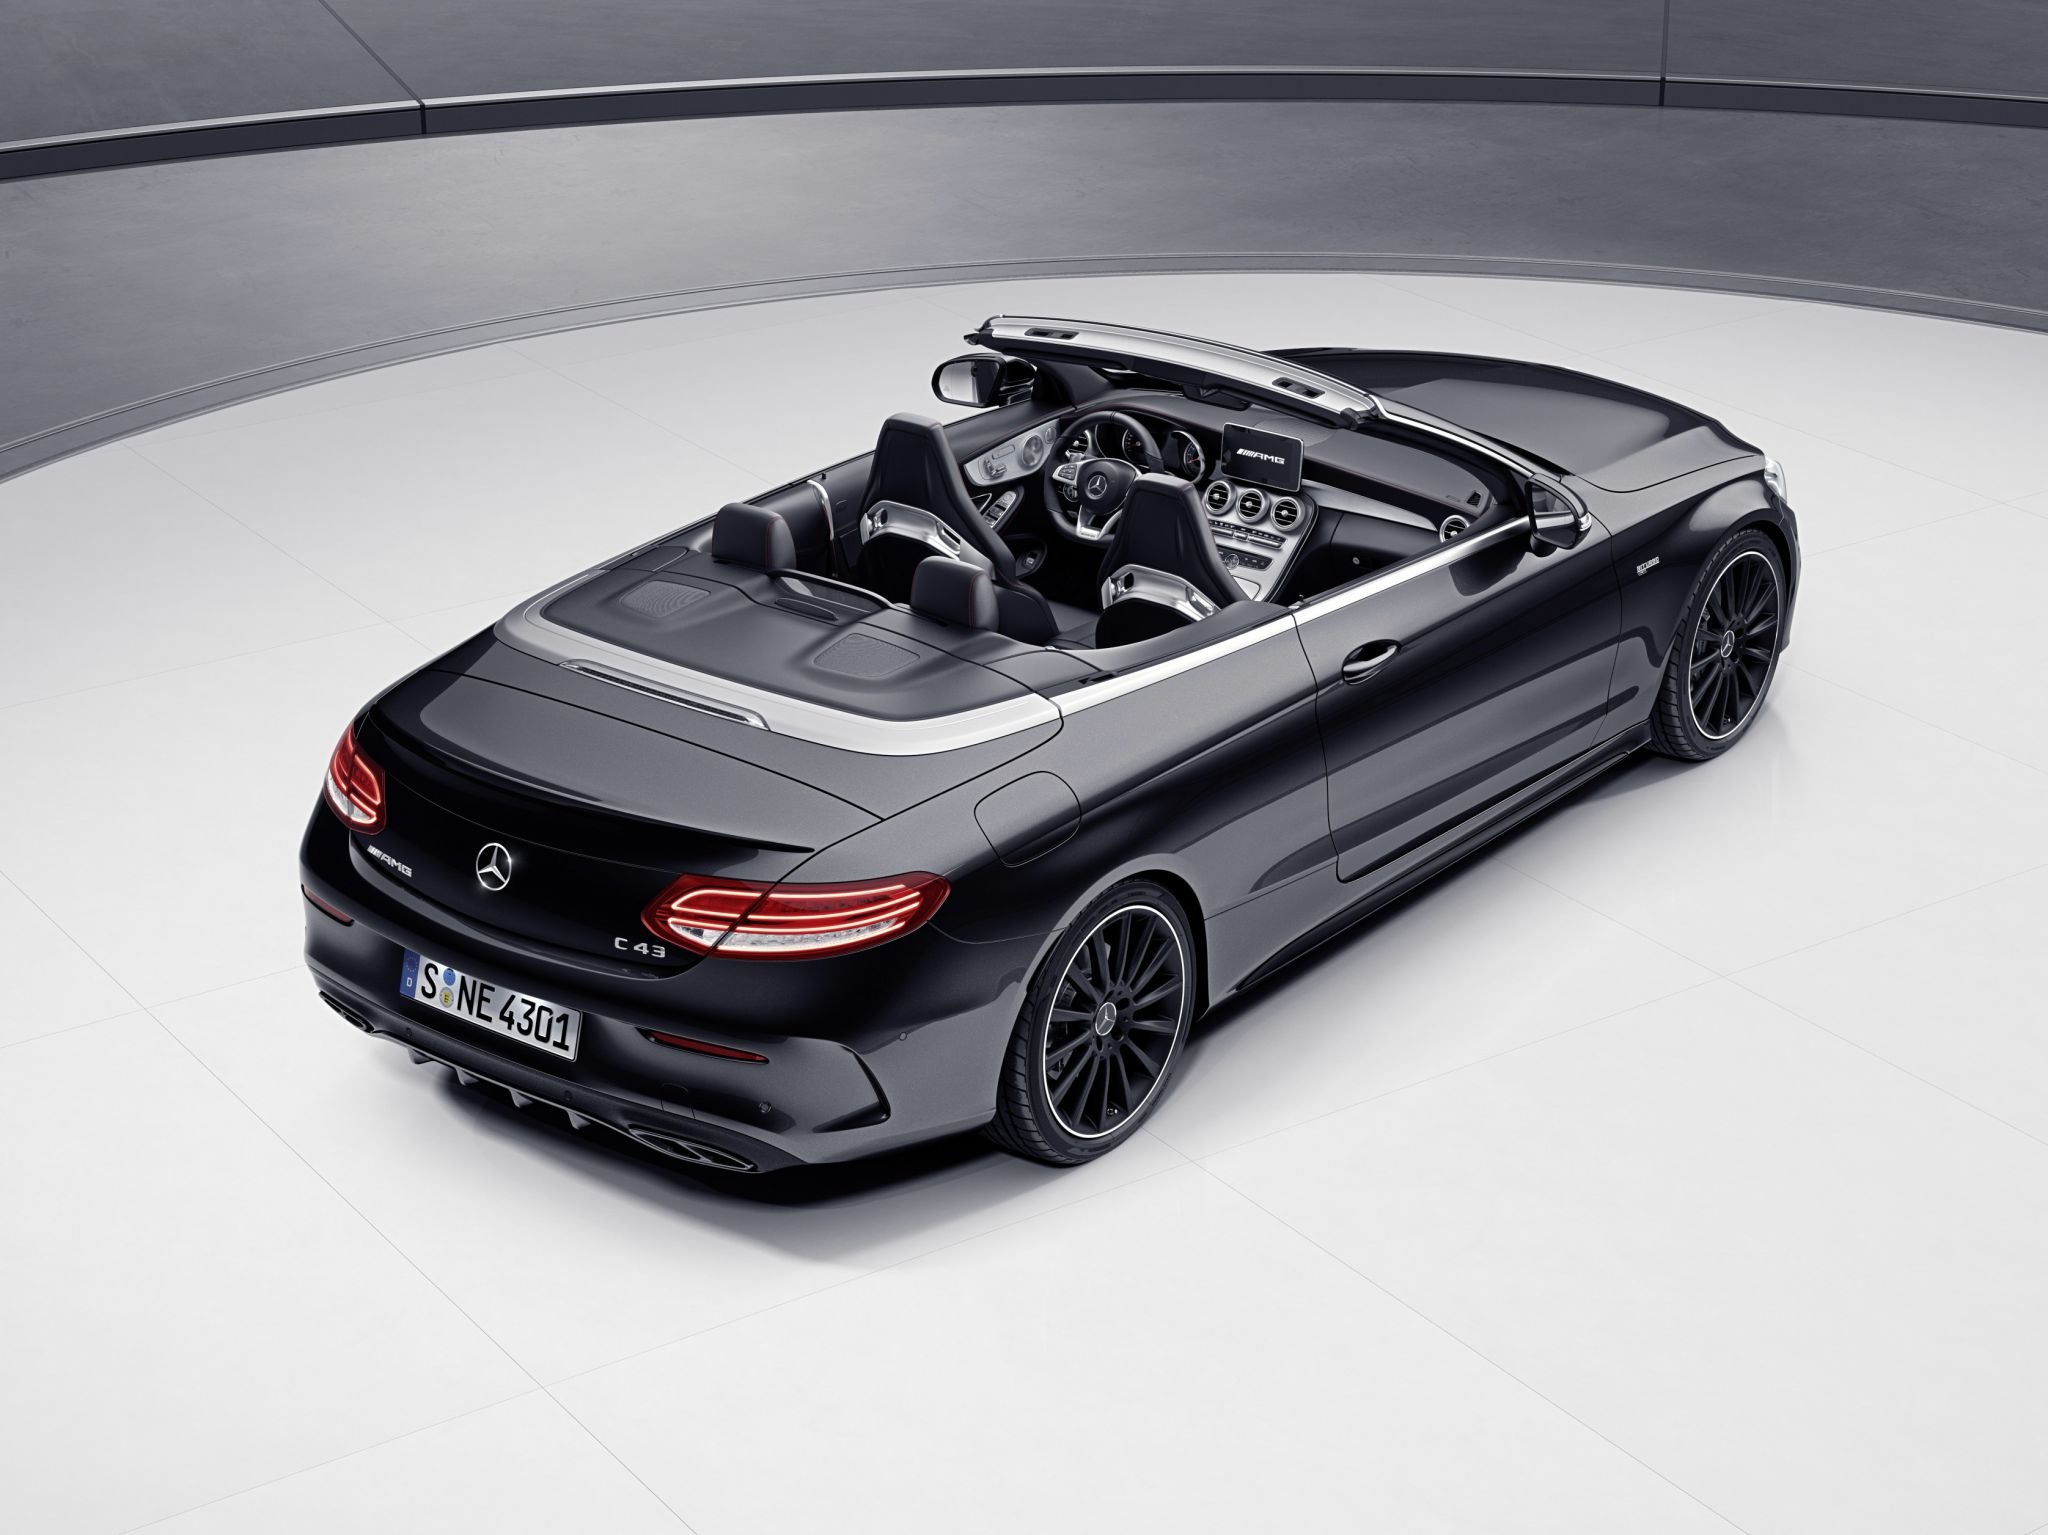 Mercedes-AMG brings out 3 new models to celebrate racing company's 50 years